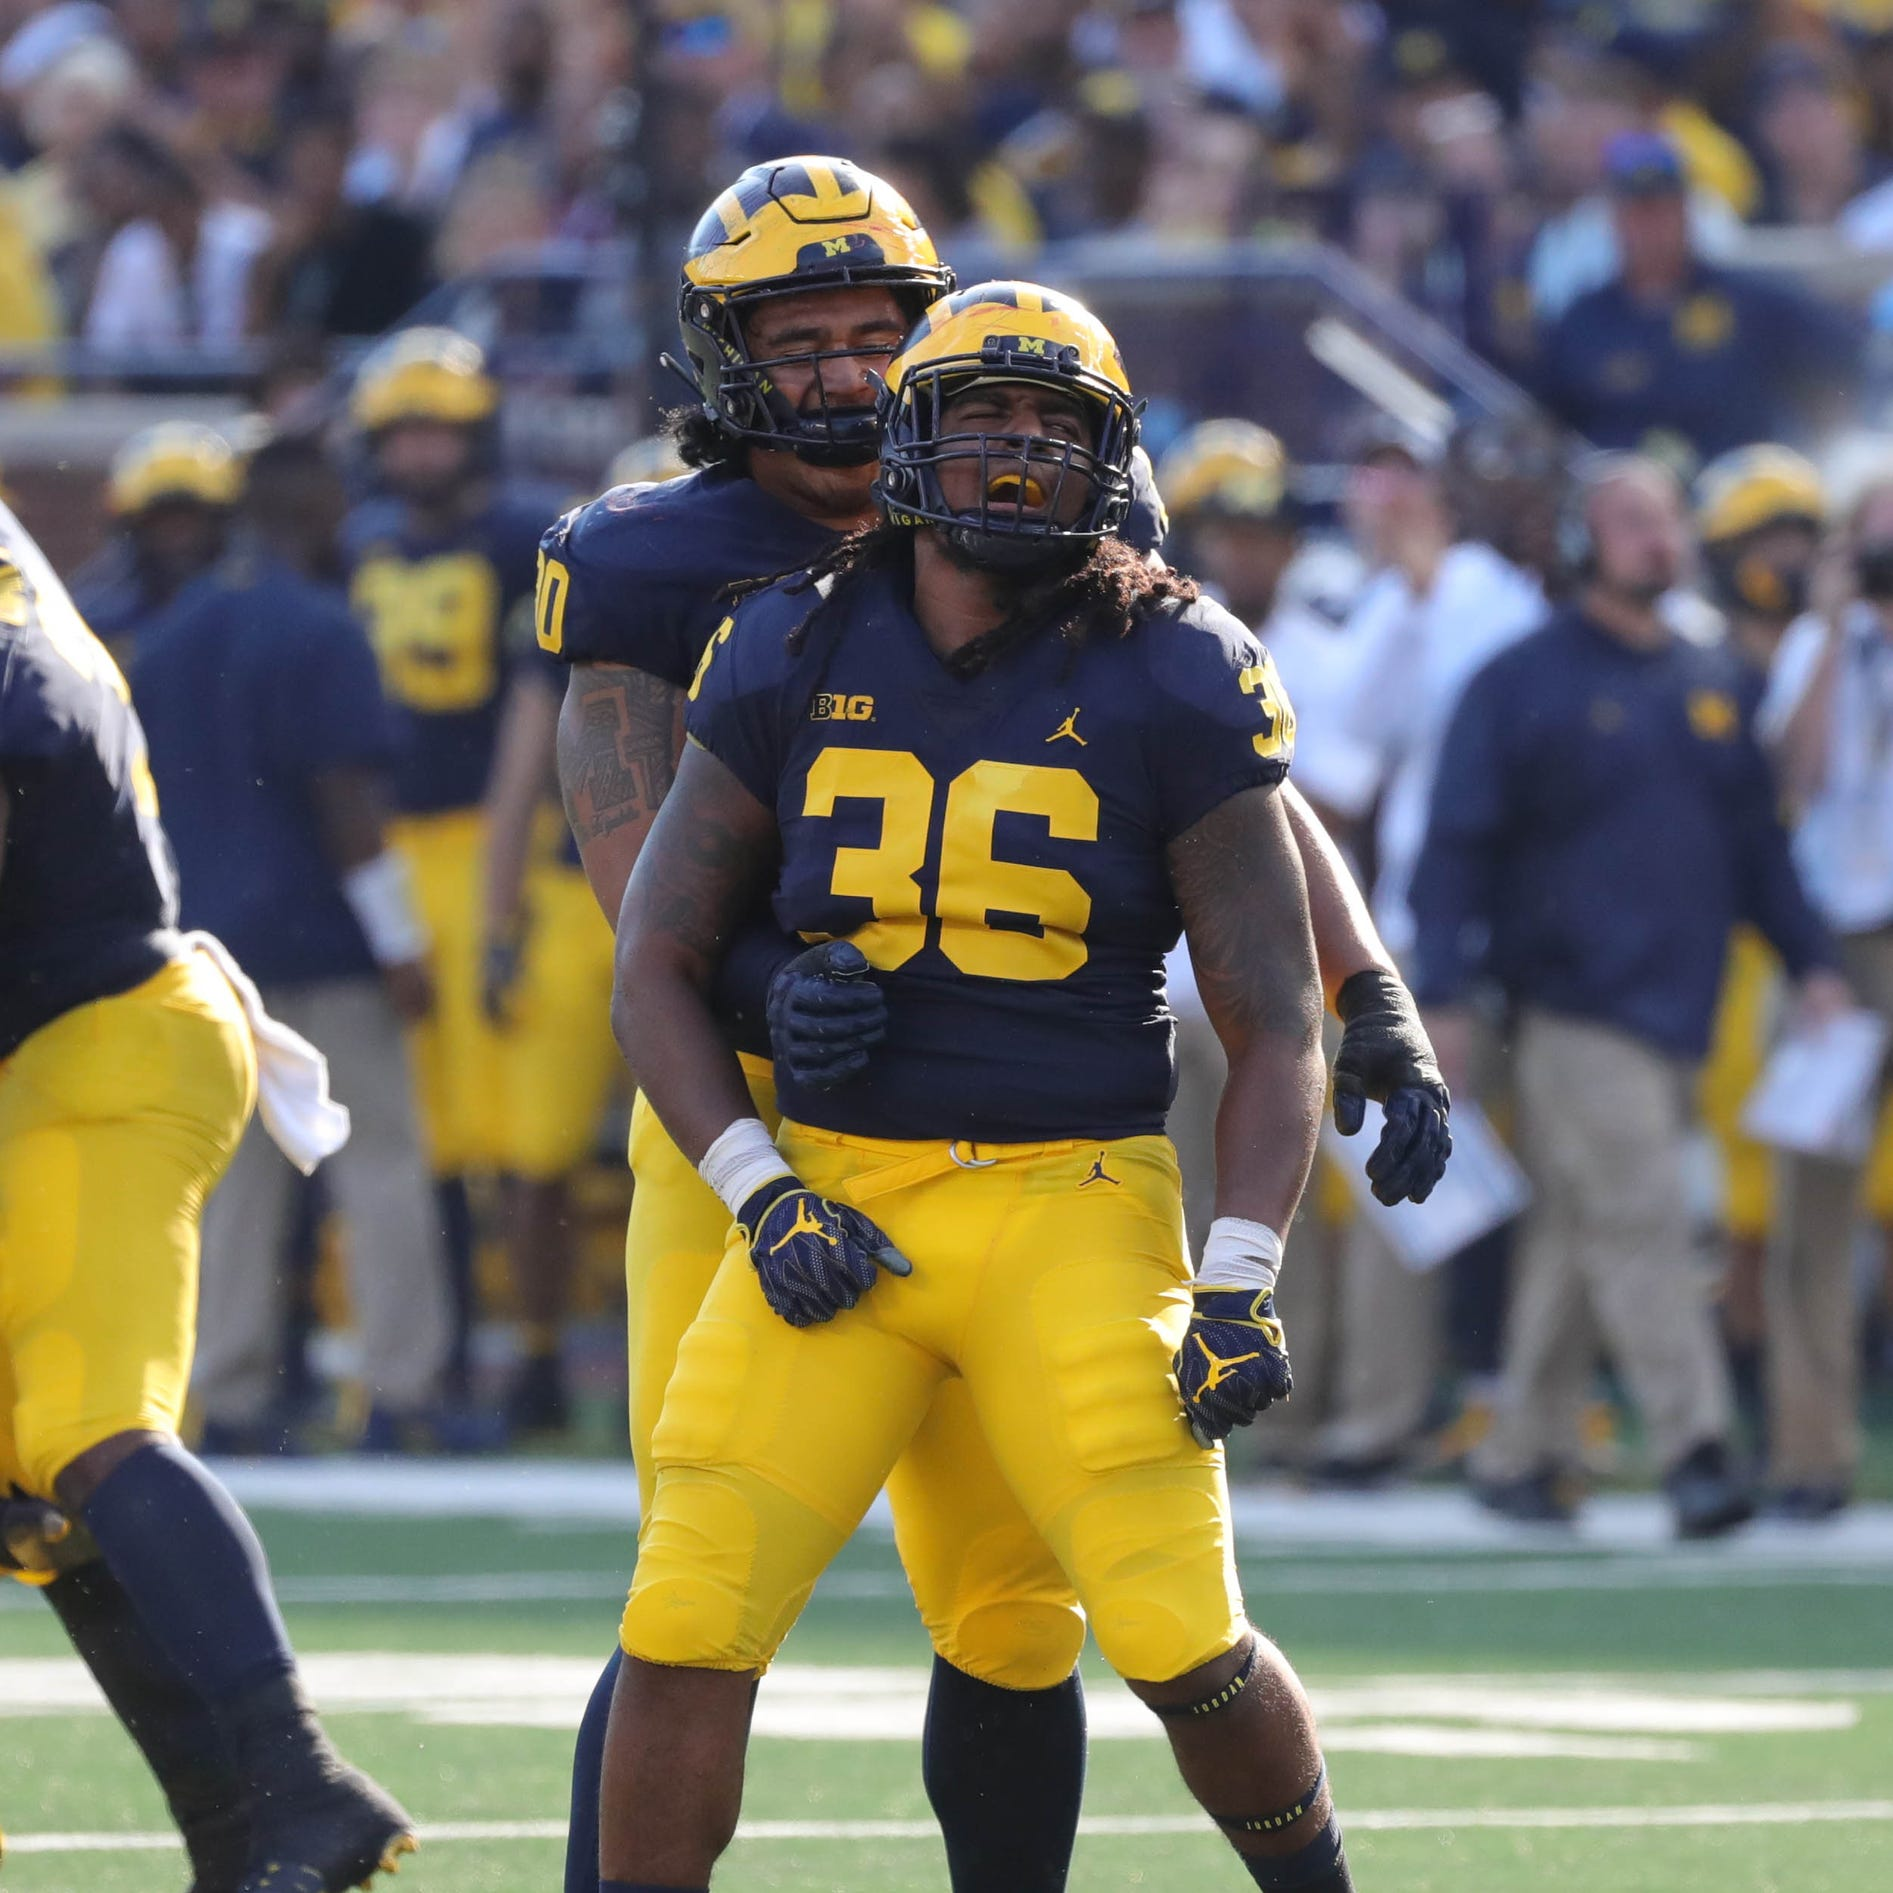 Michigan football vs. Nebraska live game blog: Kickoff at noon